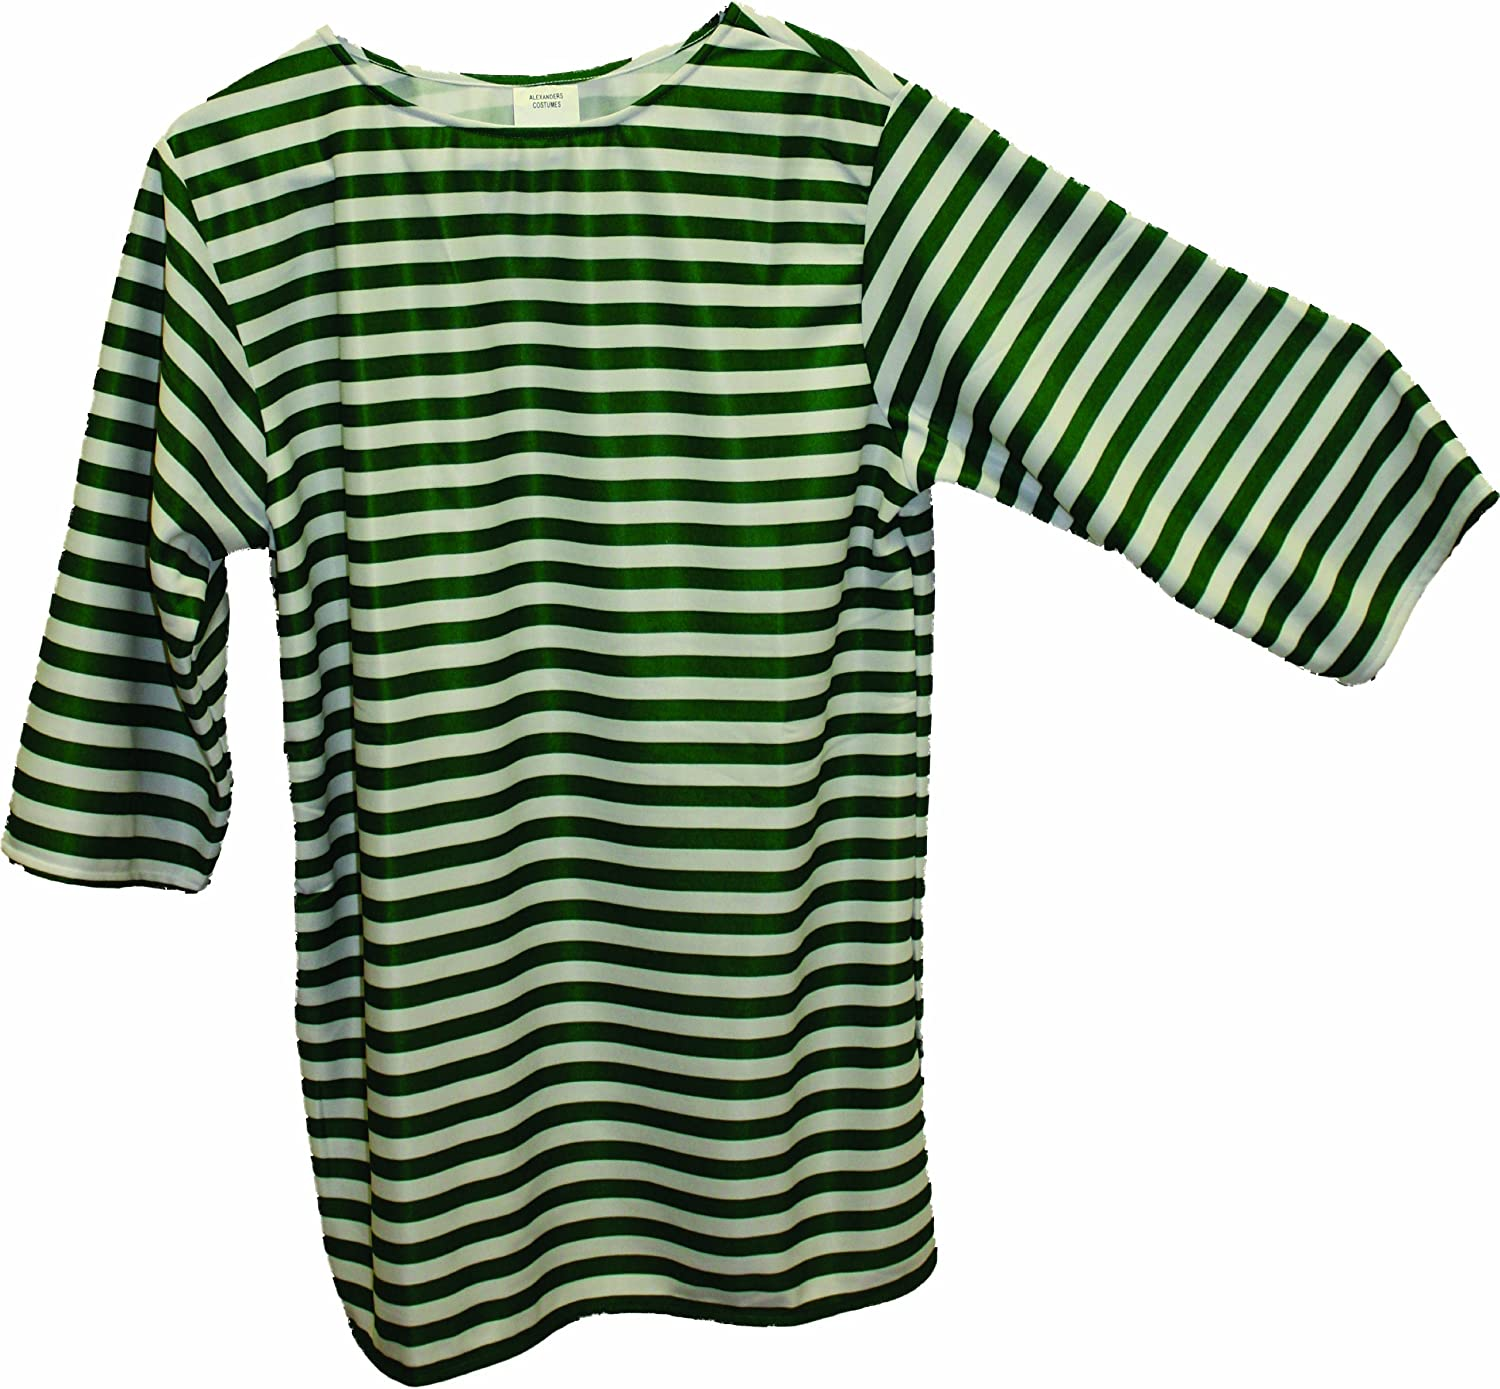 Alexanders Costumes Striped Shirt Clothing Badly Drawn Tshirt Short Circuit Mens Buy Online At Grindstore